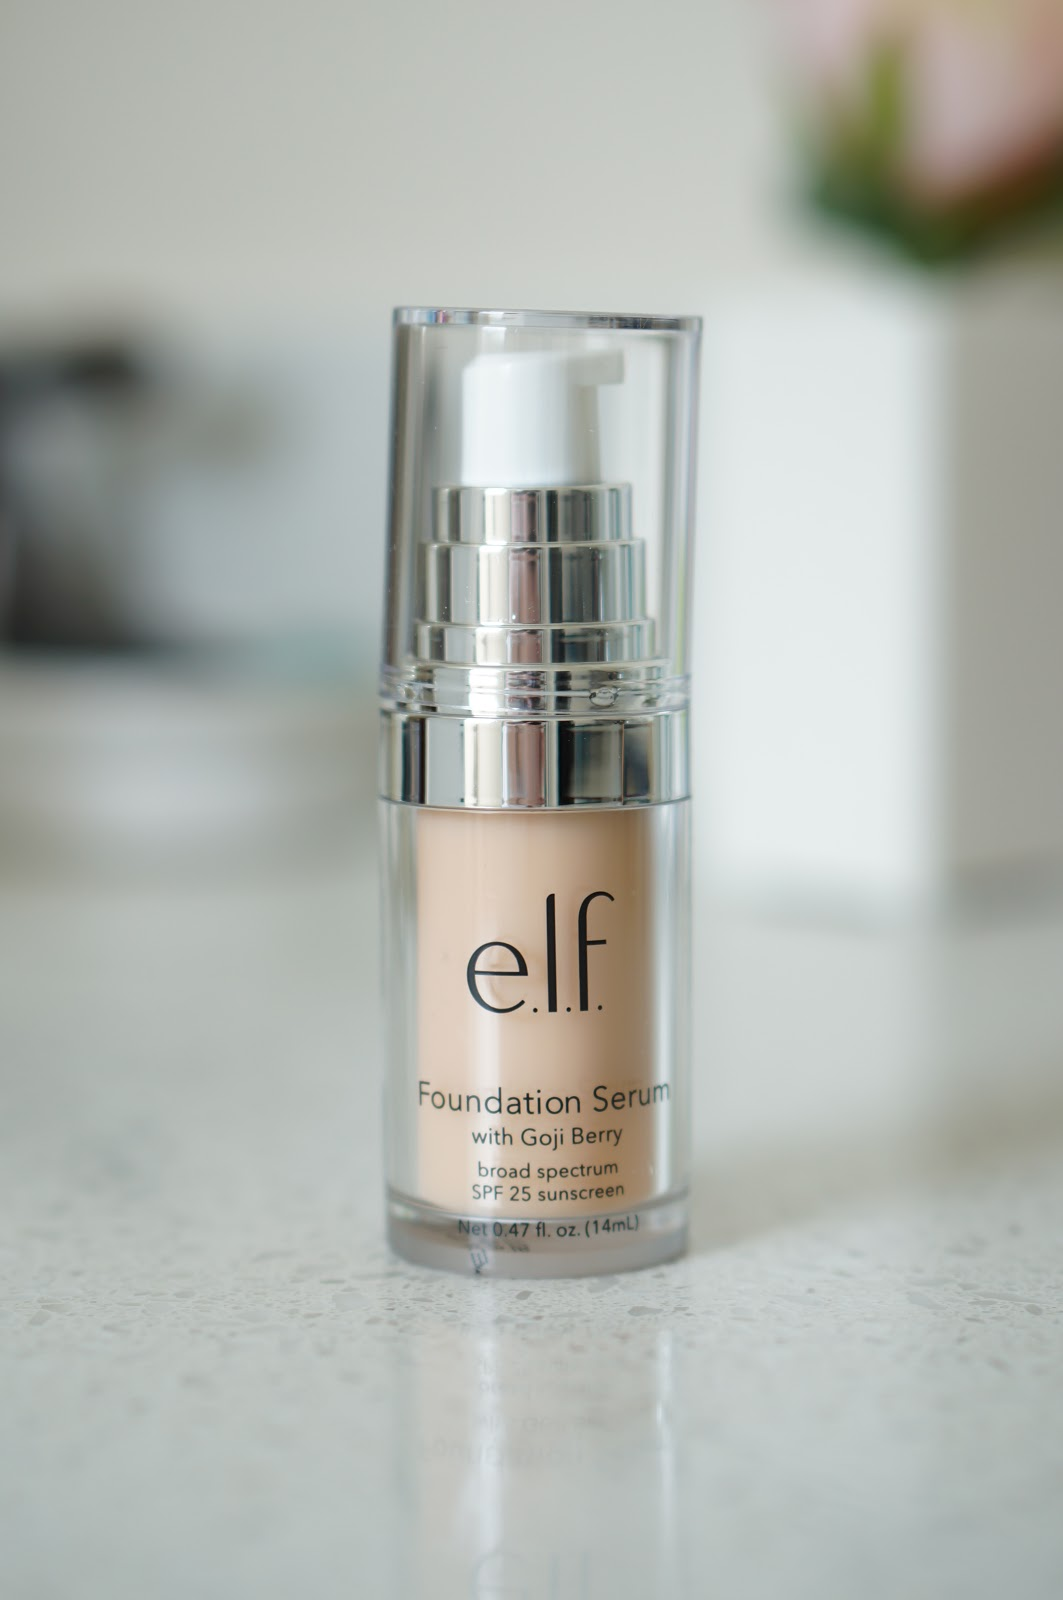 Popular North Carolina style blogger Rebecca Lately shares a cruelty free foundation Friday.  Click here to read about the E.L.F. Beautifully Bare Foundation Serum!